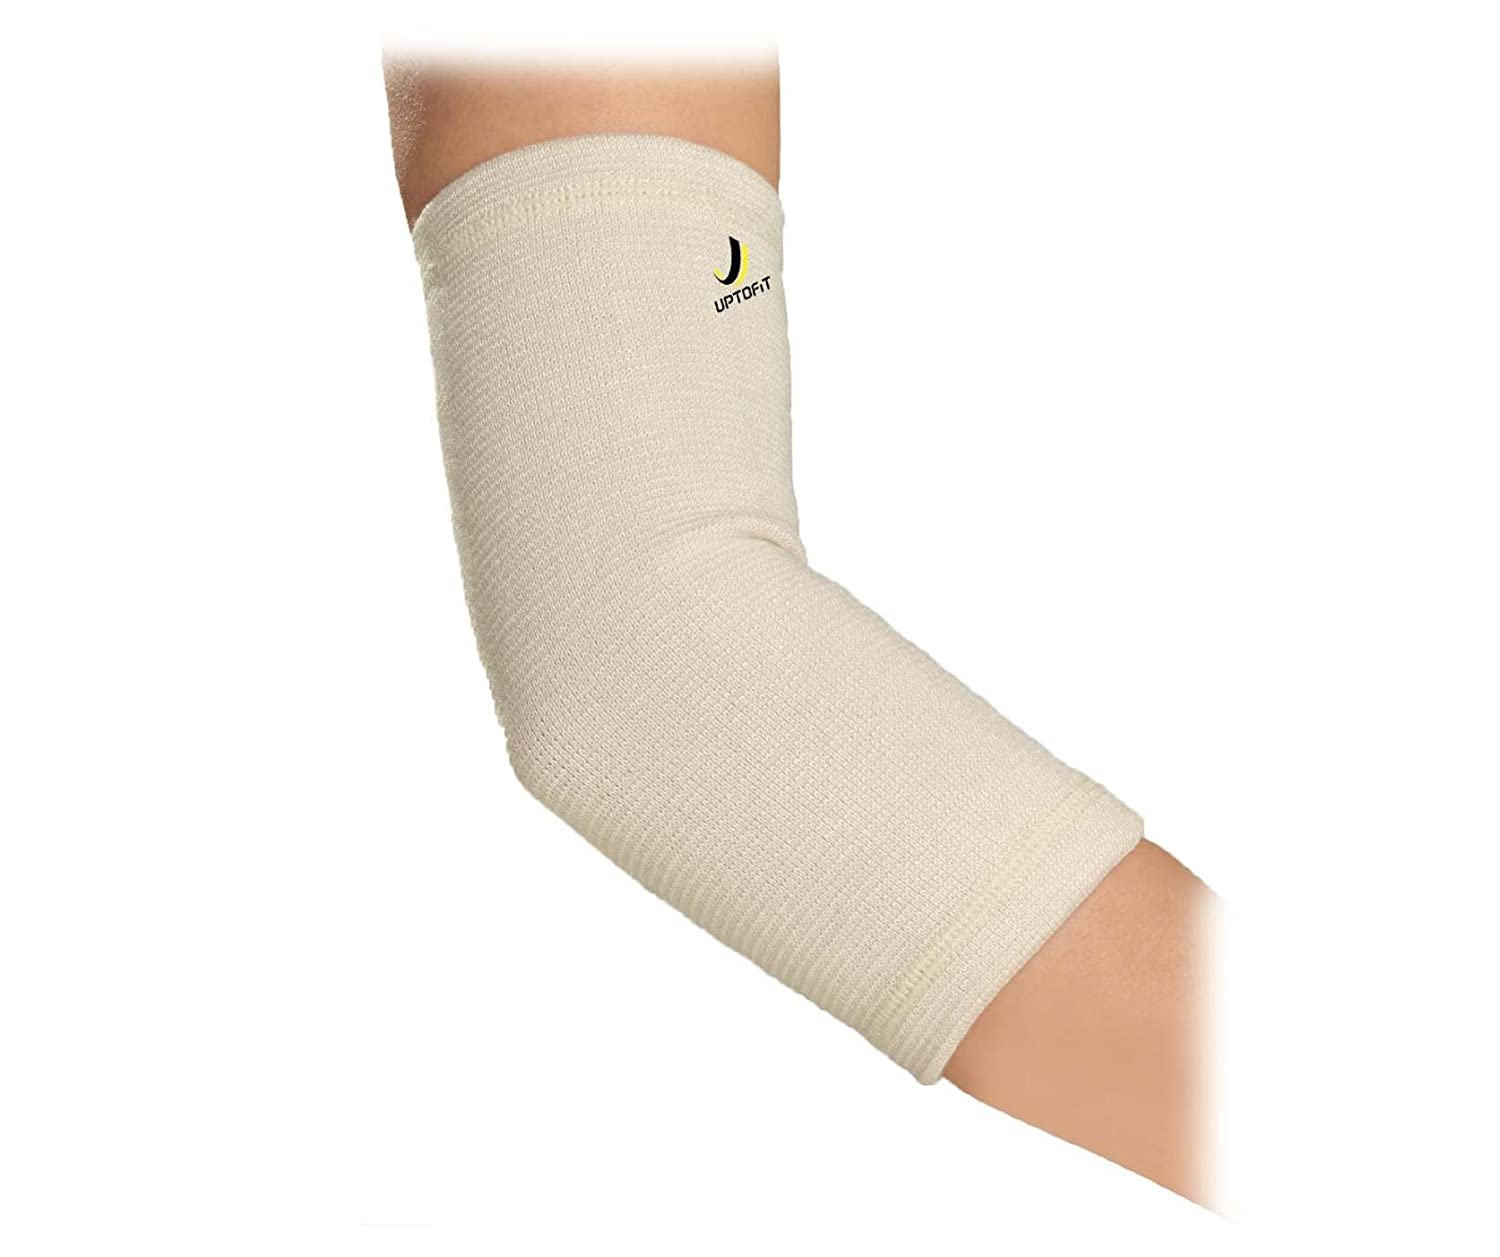 UPTOFIT Elbow Compression Sleeve for Selling and selling Long-awaited Women Brace fo Copper